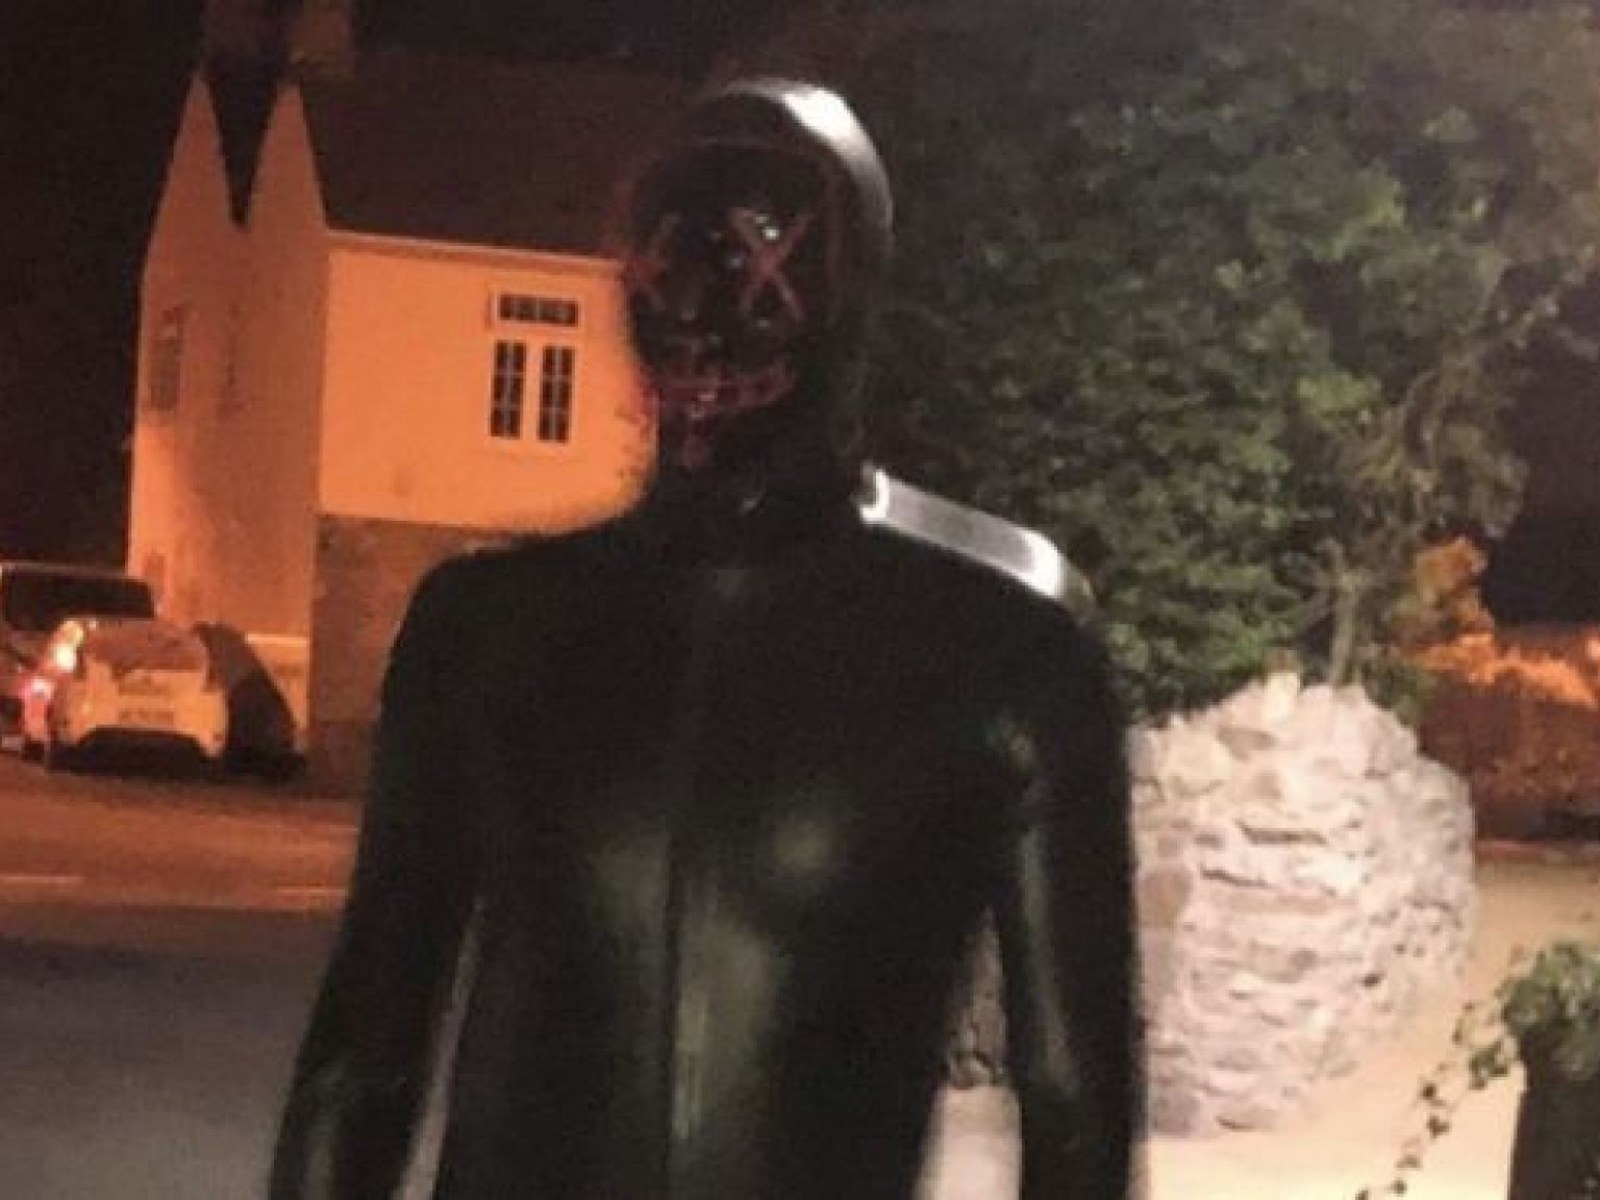 Man In Rubber 'Gimp' Suit Terrorizes Small English Town